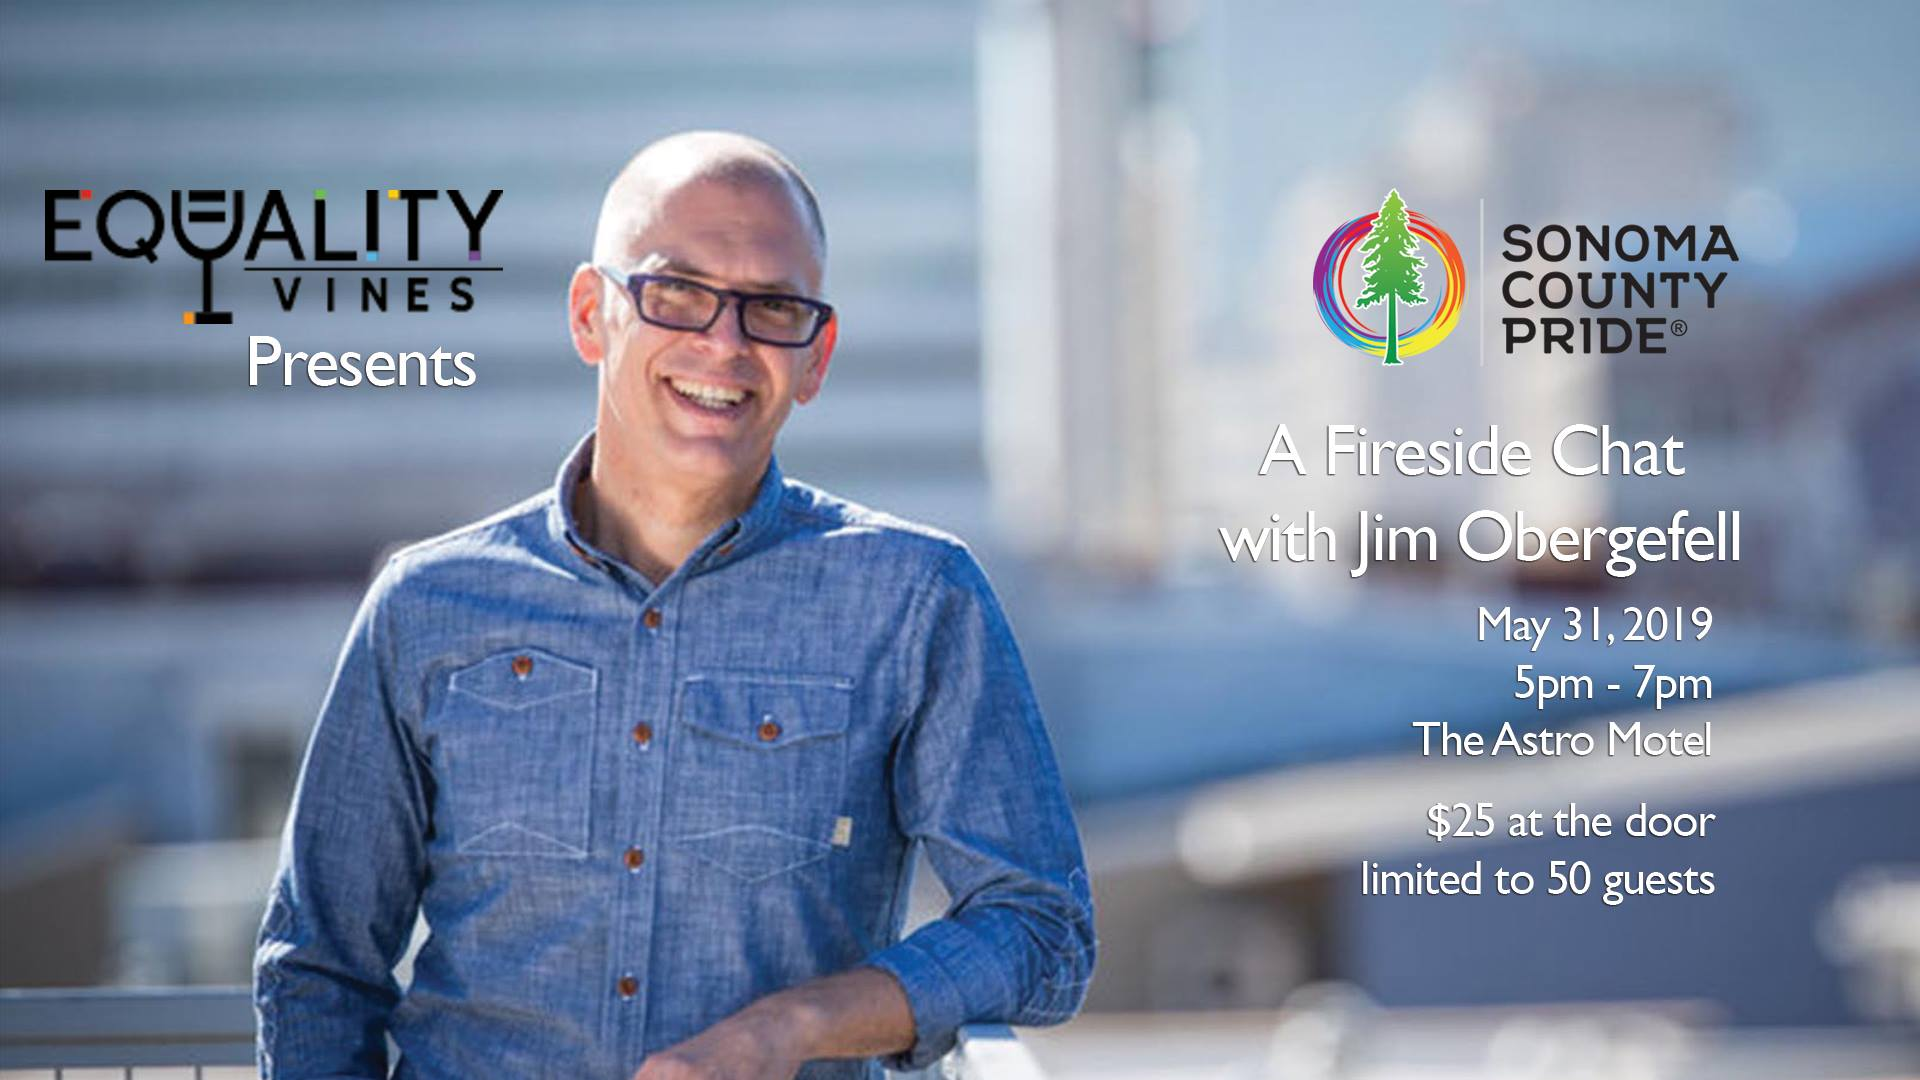 Equality Vines Presents A Fireside Chat with Jim Obergefell